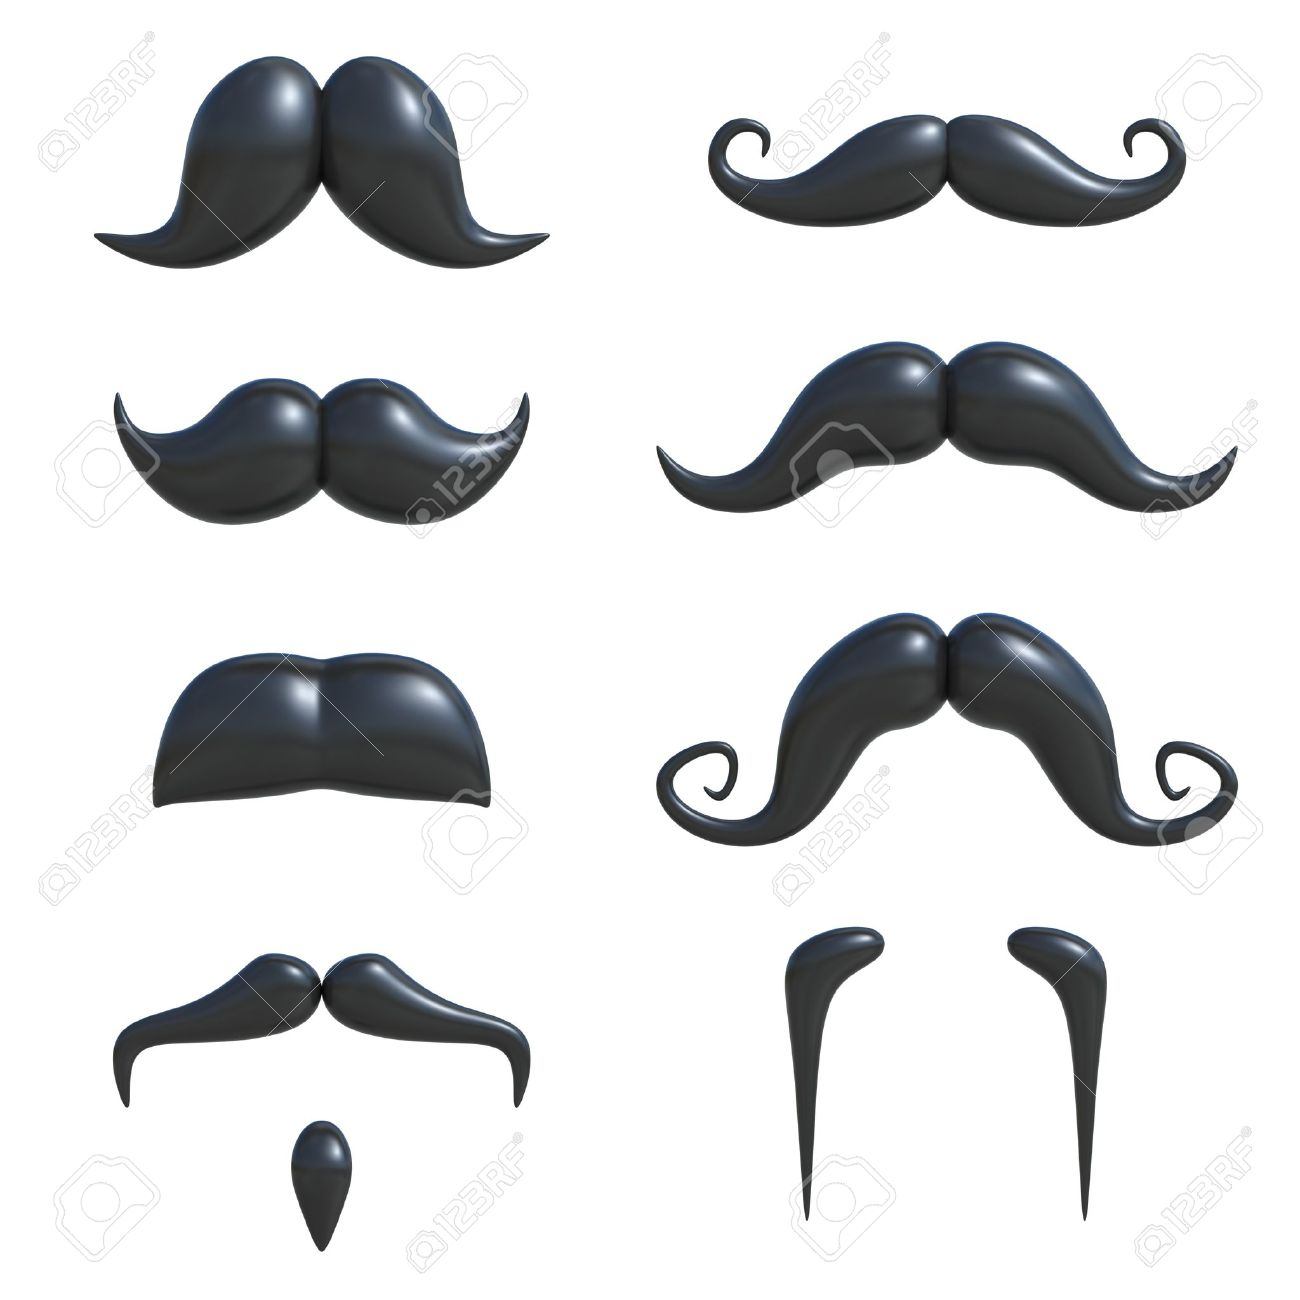 55 404 mustache stock vector illustration and royalty free